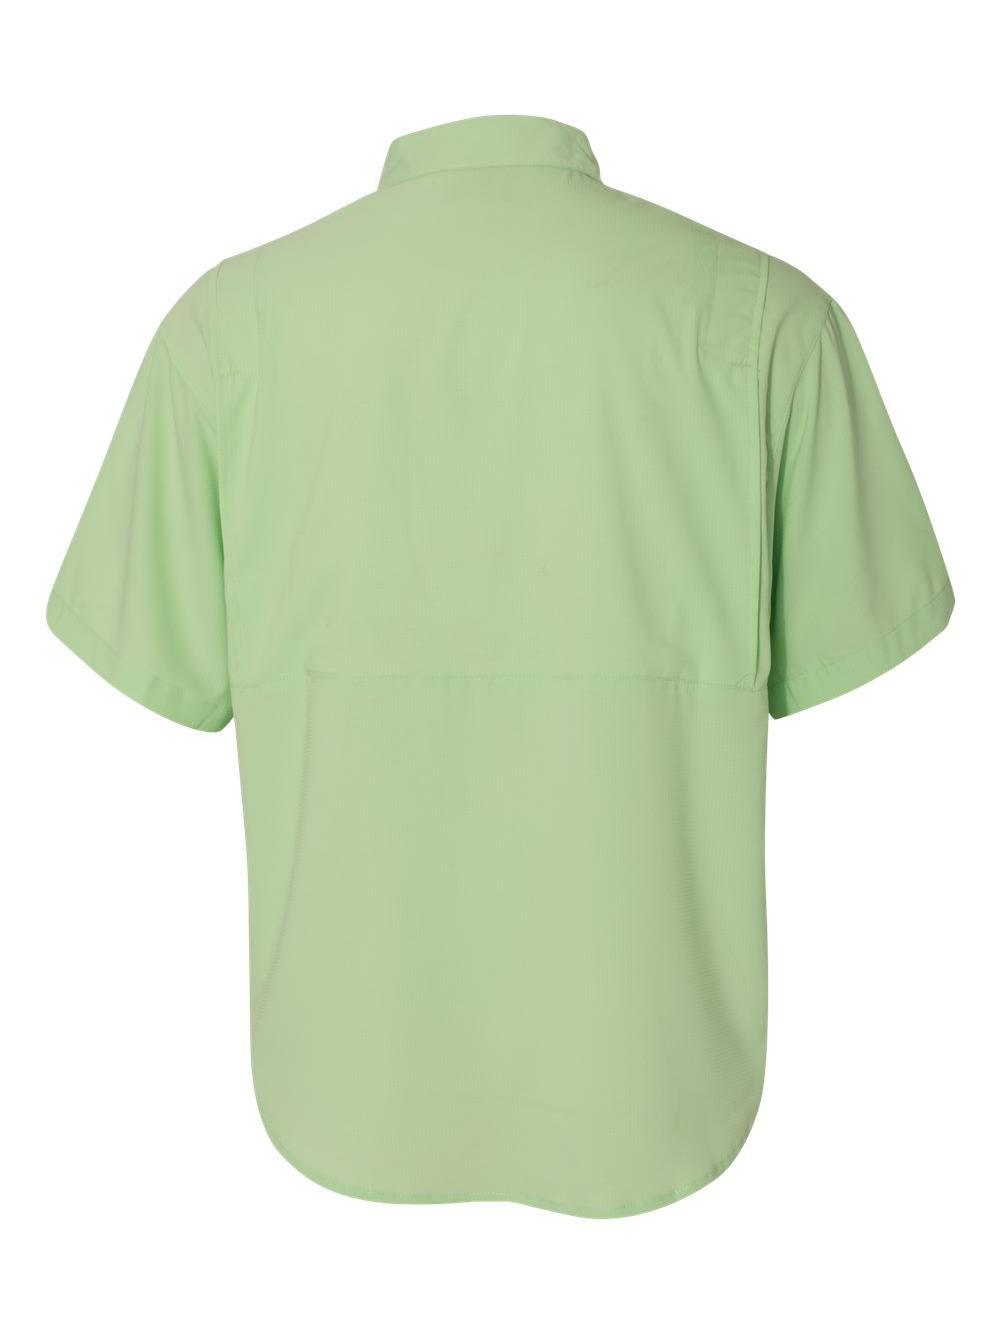 Hilton-Baja-Short-Sleeve-Fishing-Shirt-ZP2297 thumbnail 10